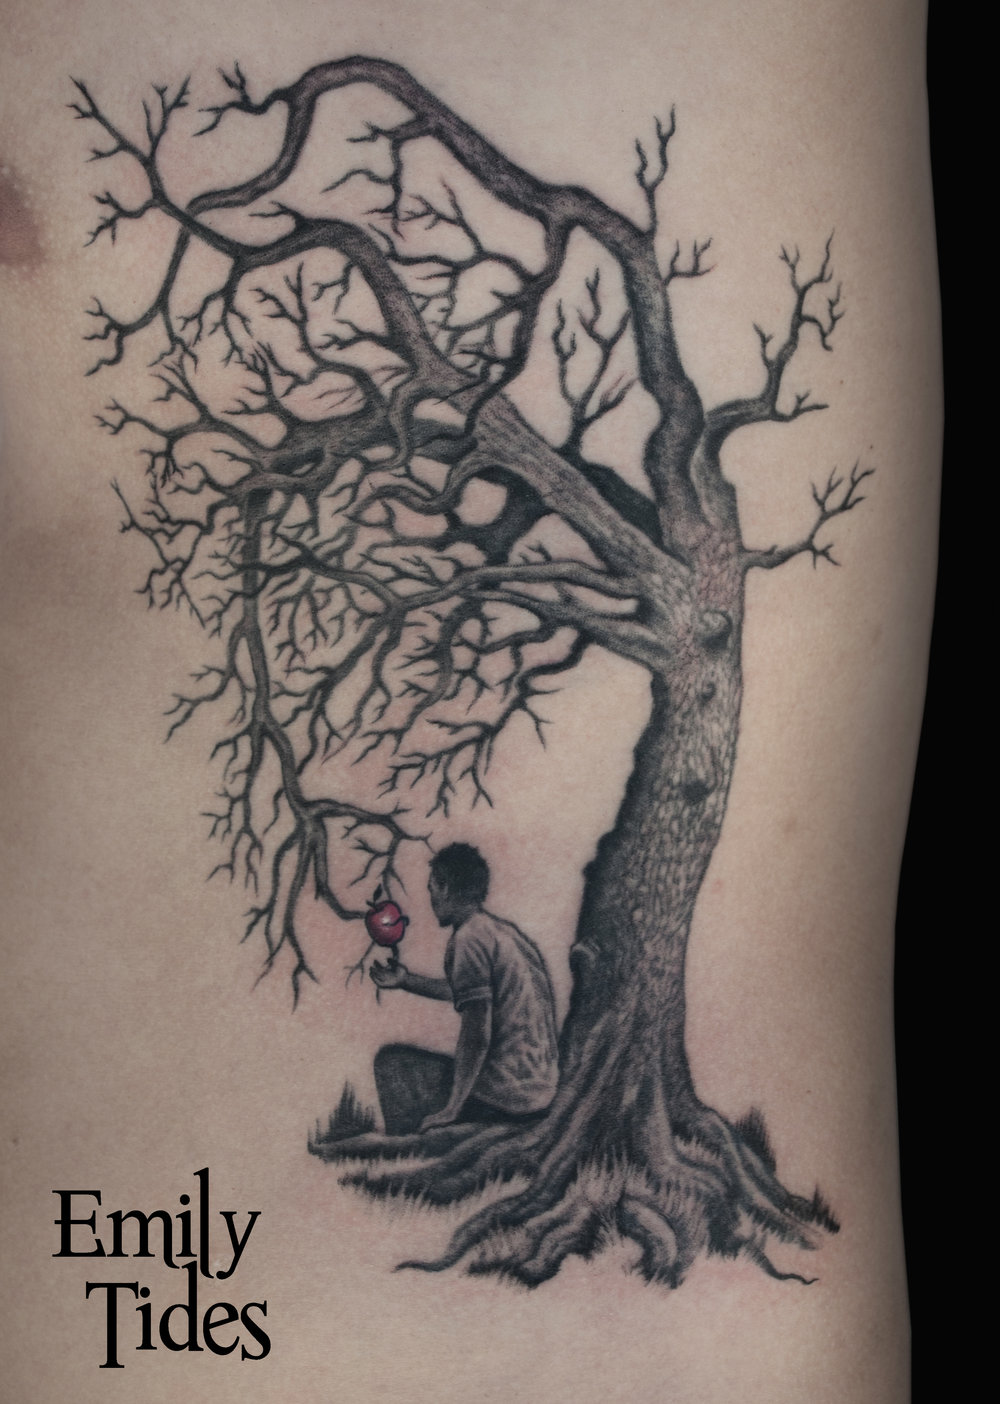 Giving Tree Tattoo emily tides.jpg